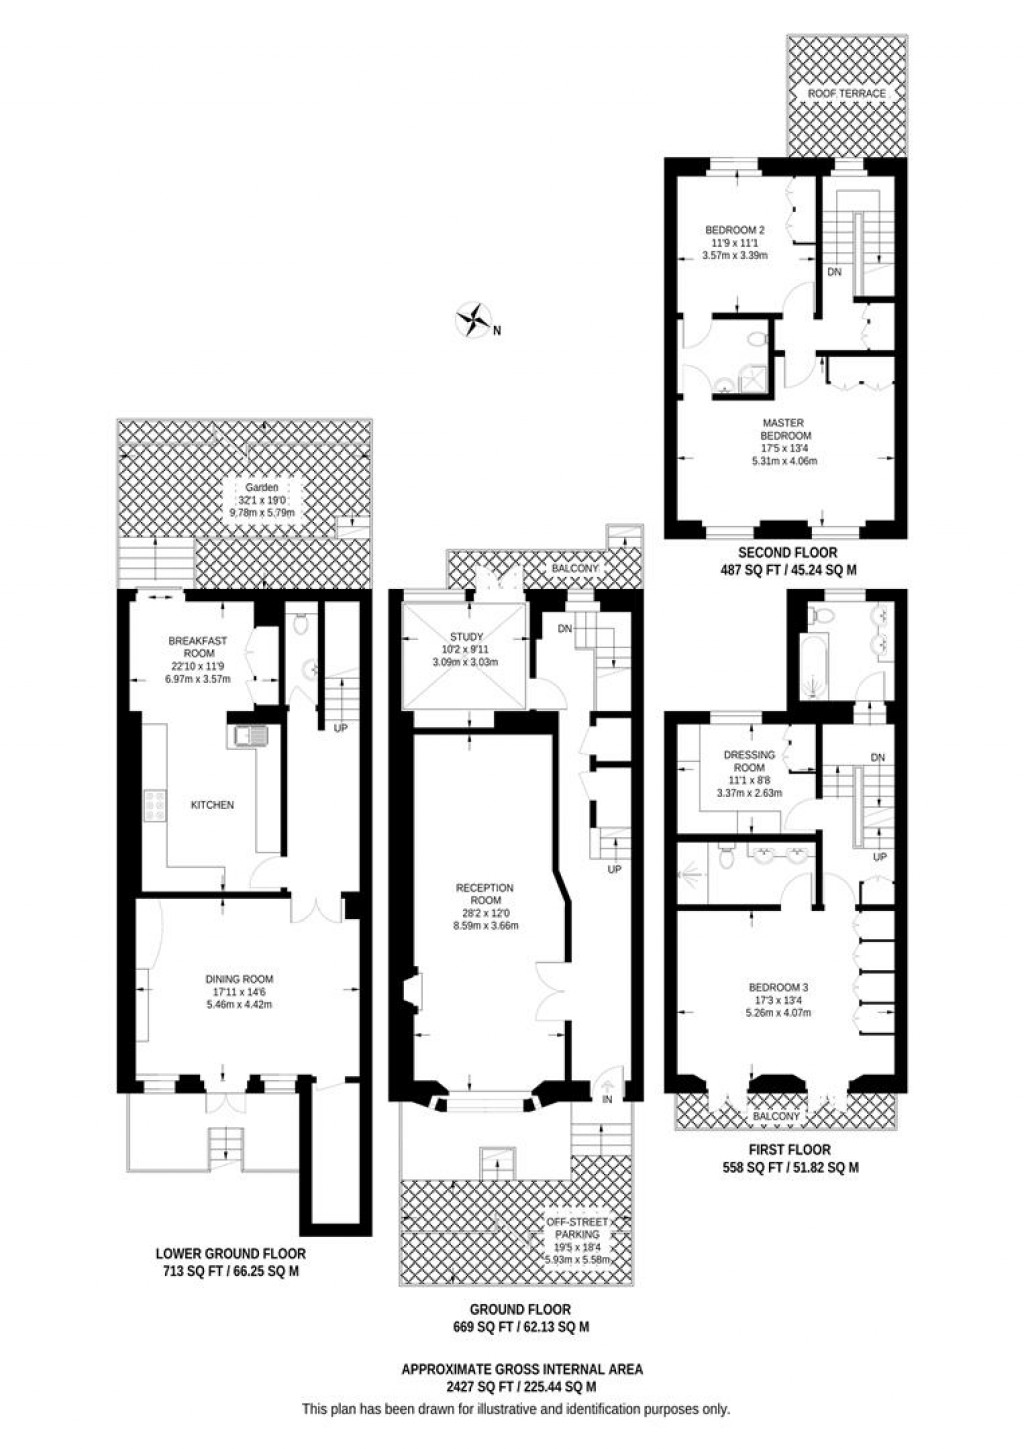 Floorplans For Marloes Road, London